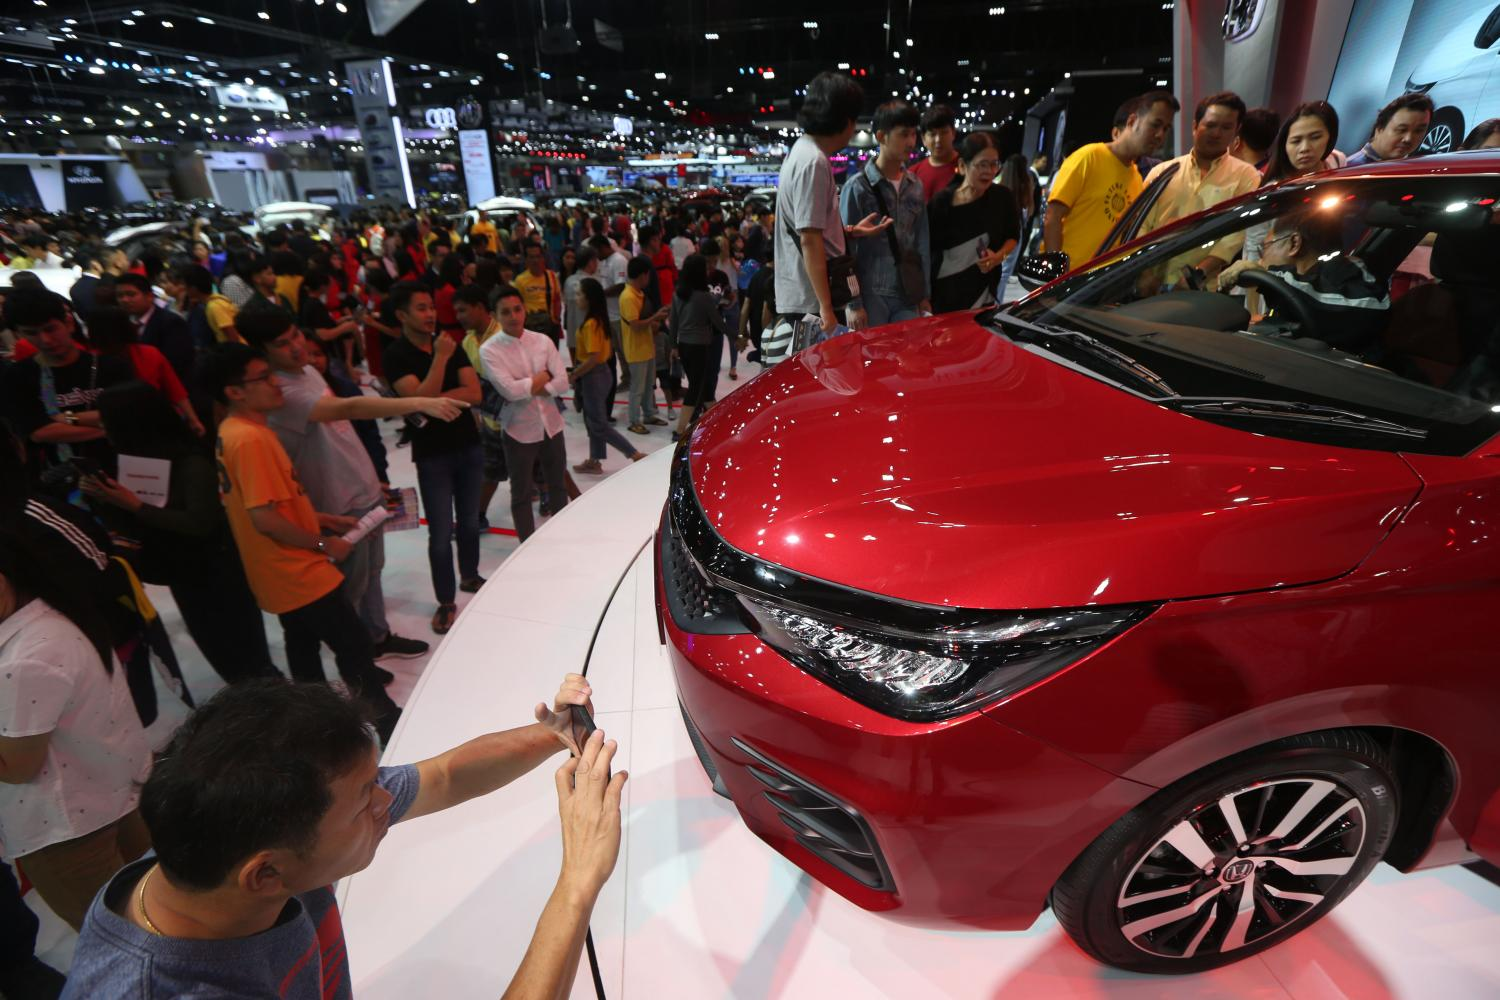 An exhibit at last year's Thailand International Motor Expo. The FTI expects car sales this year to plunge by 50% from 2019. (Photo by Varuth Hirunyatheb)